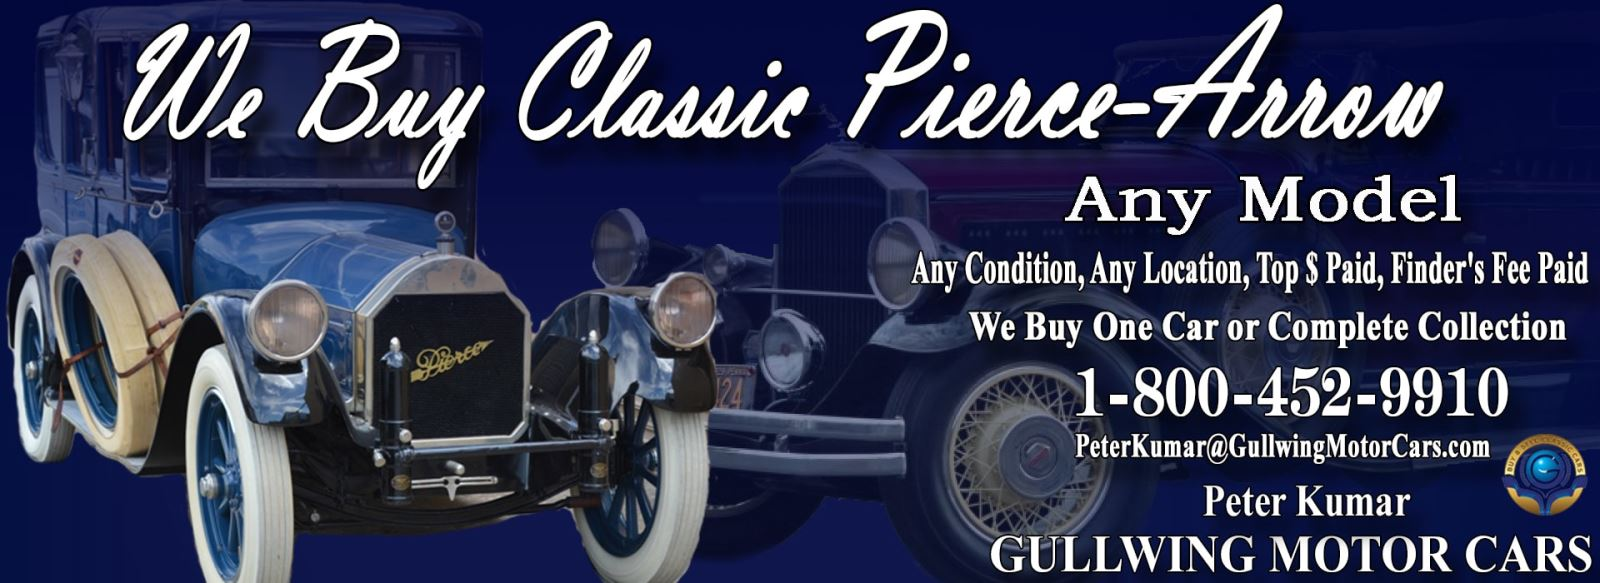 Classic Pierce Arrow for sale, we buy vintage Pierce Arrow. Call Peter Kumar. Gullwing Motor